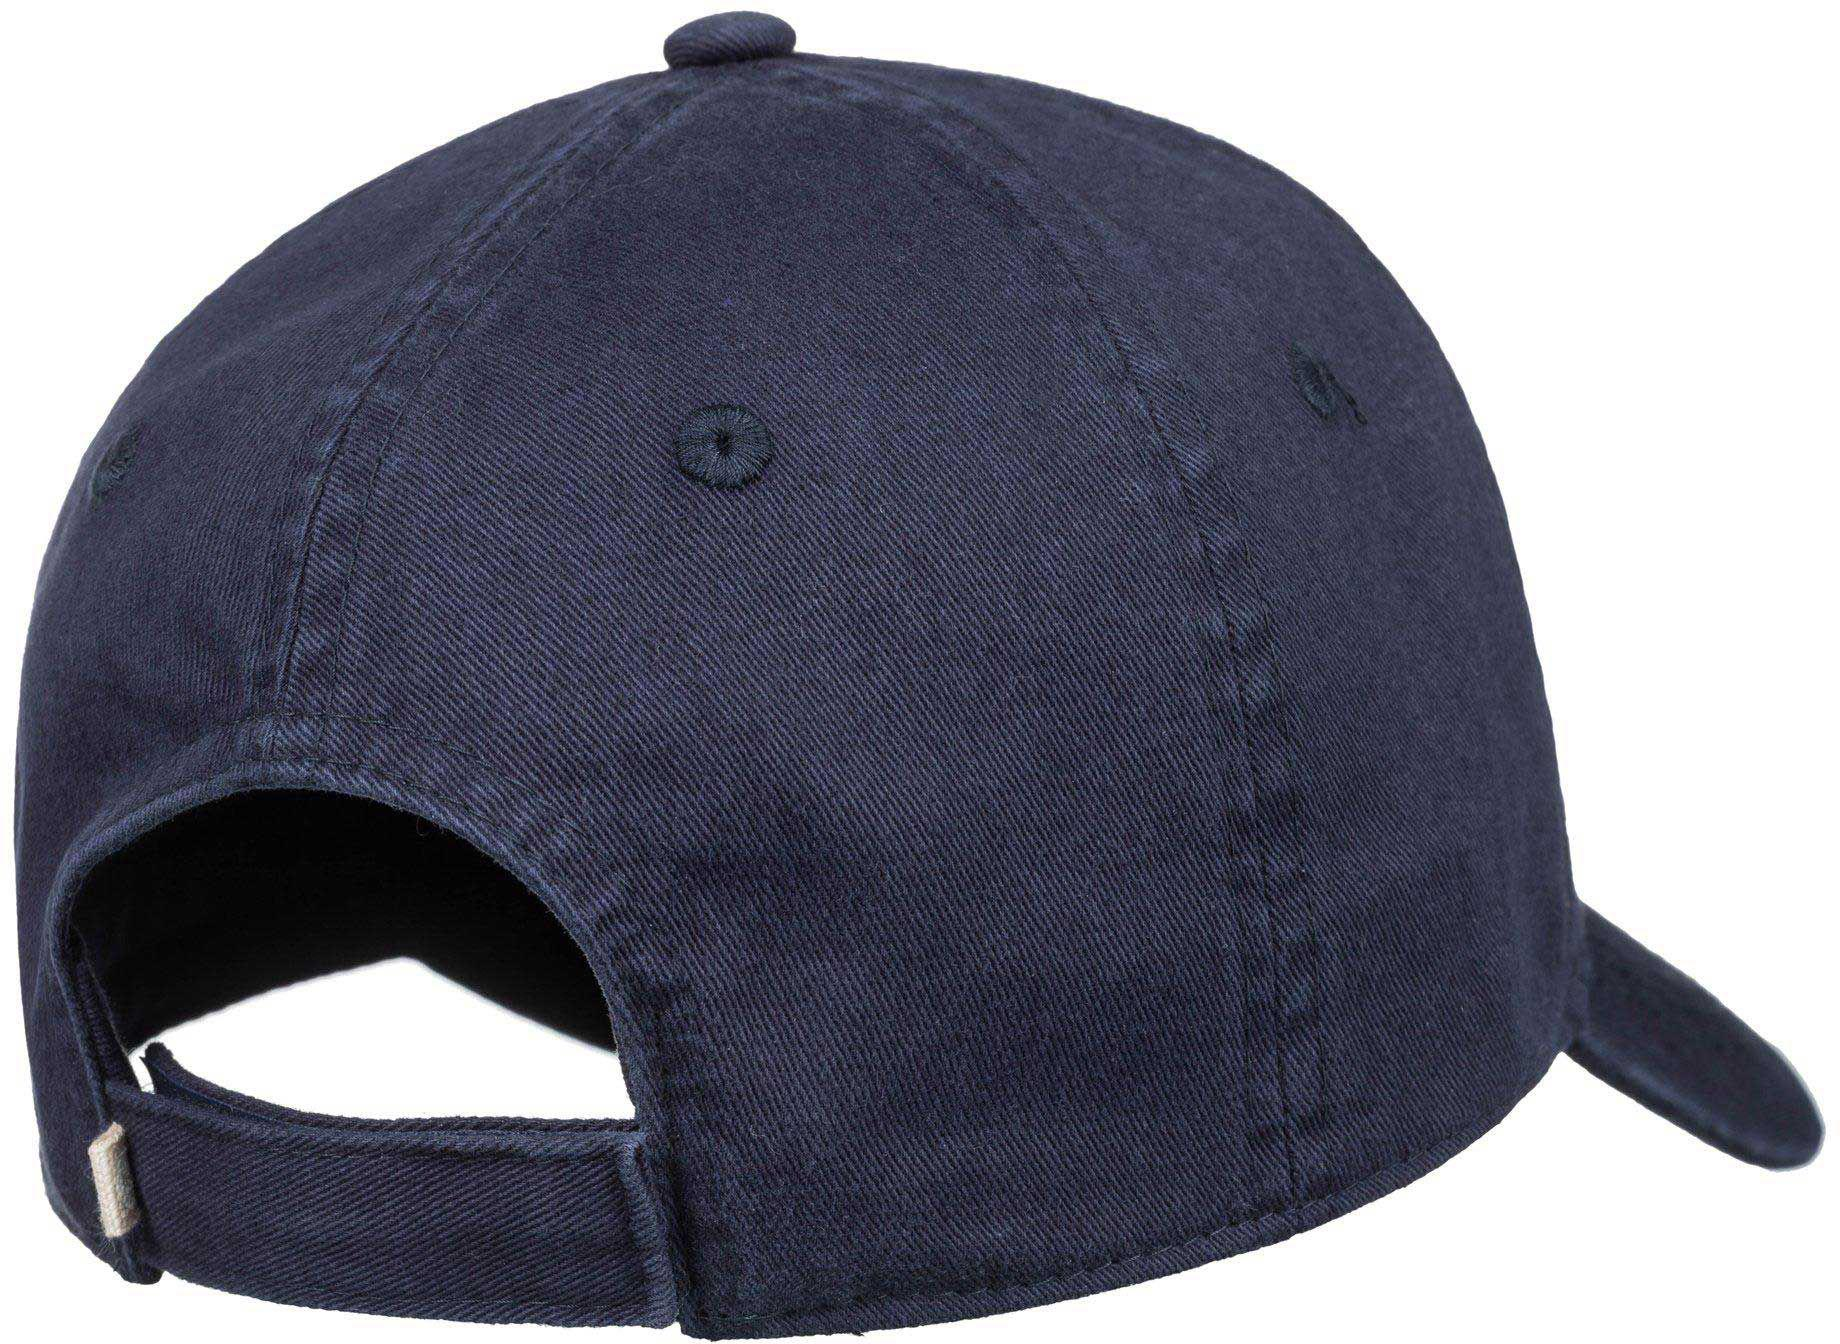 28b7ef53fec Roxy - Blue Dear Believer Baseball Hat - Lyst. View fullscreen